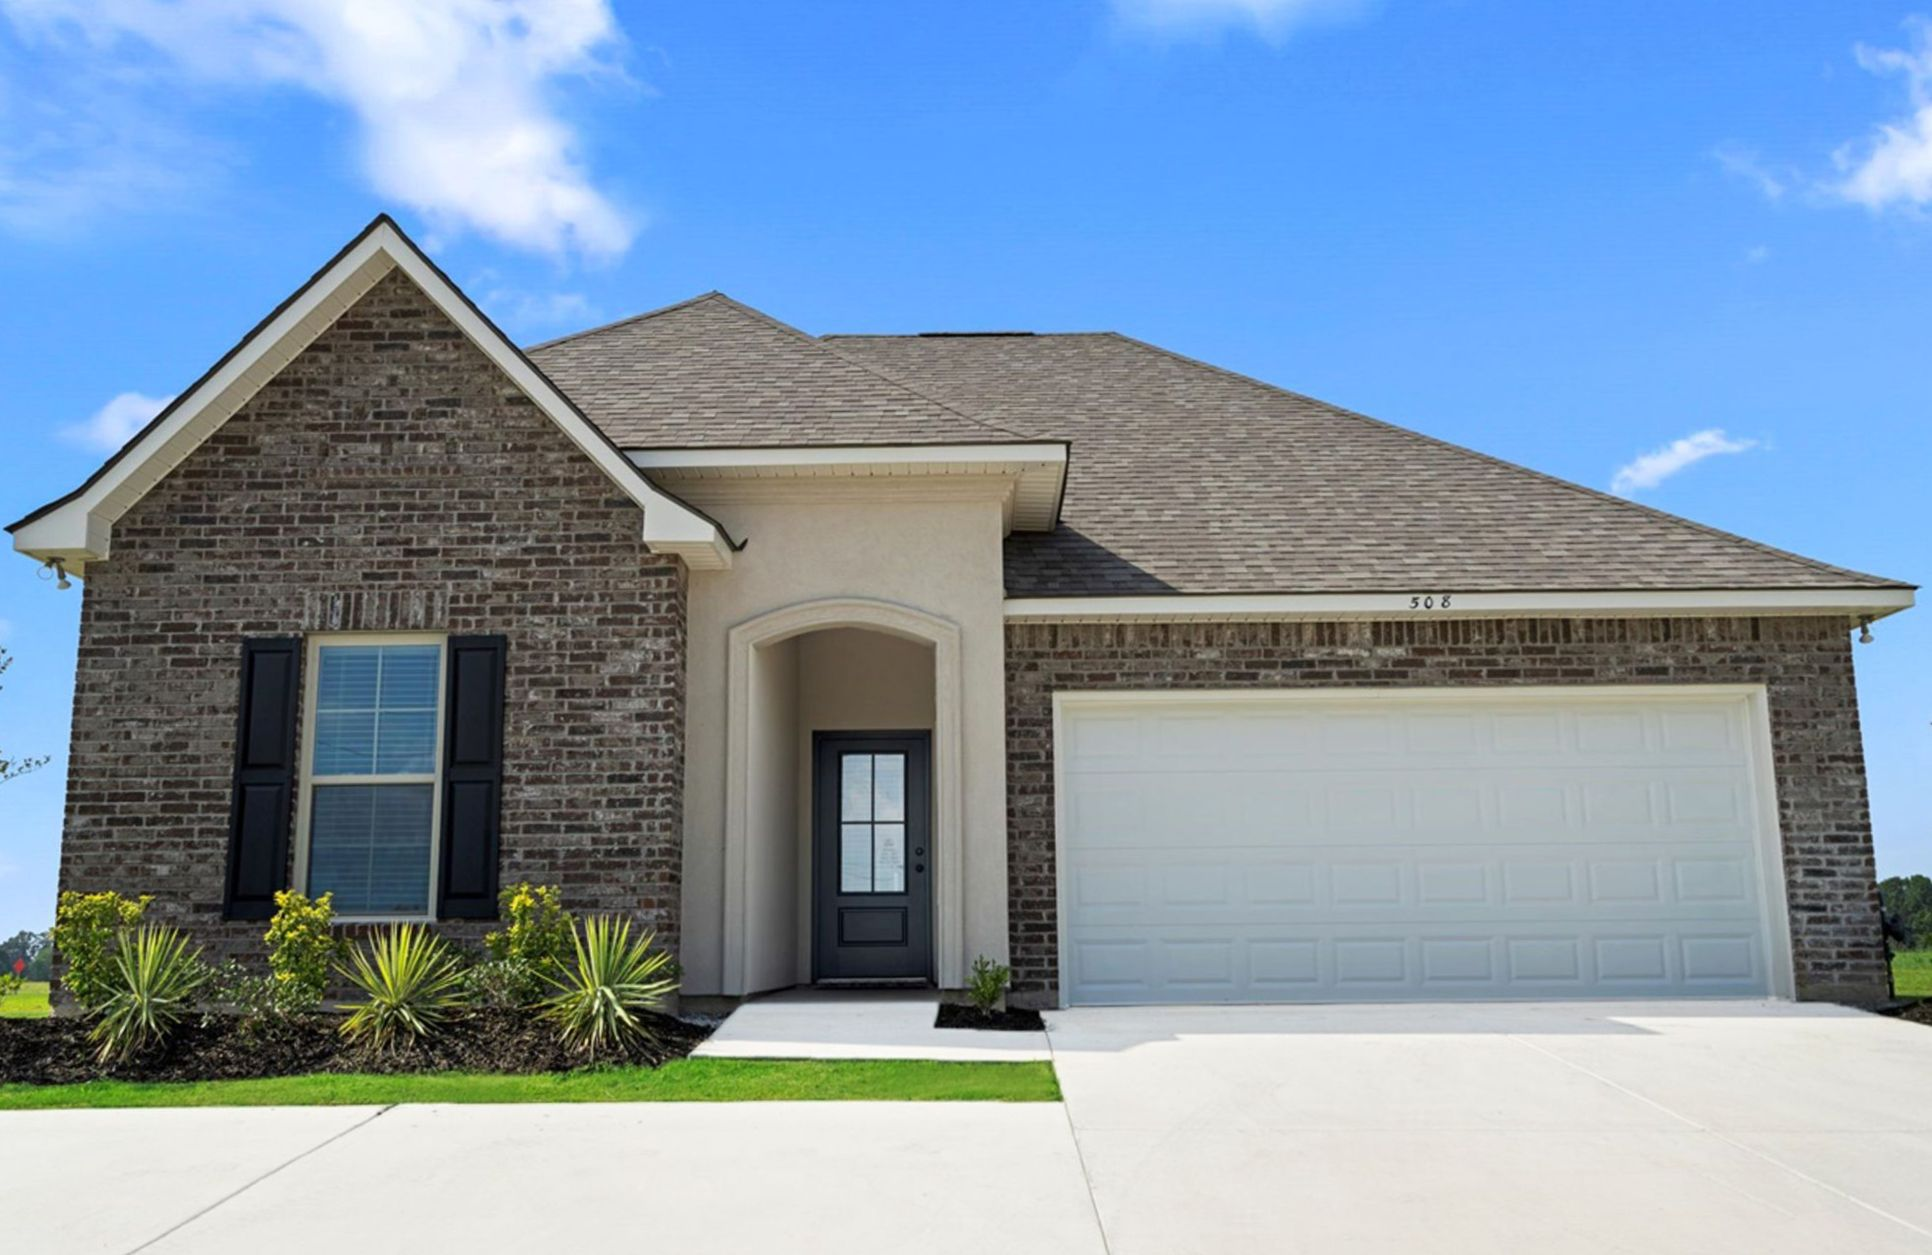 new homes in duson, la in avery meadows:Somerset Park Model Home - Trillium III A - Townsend III G Crossover - DSLD Homes